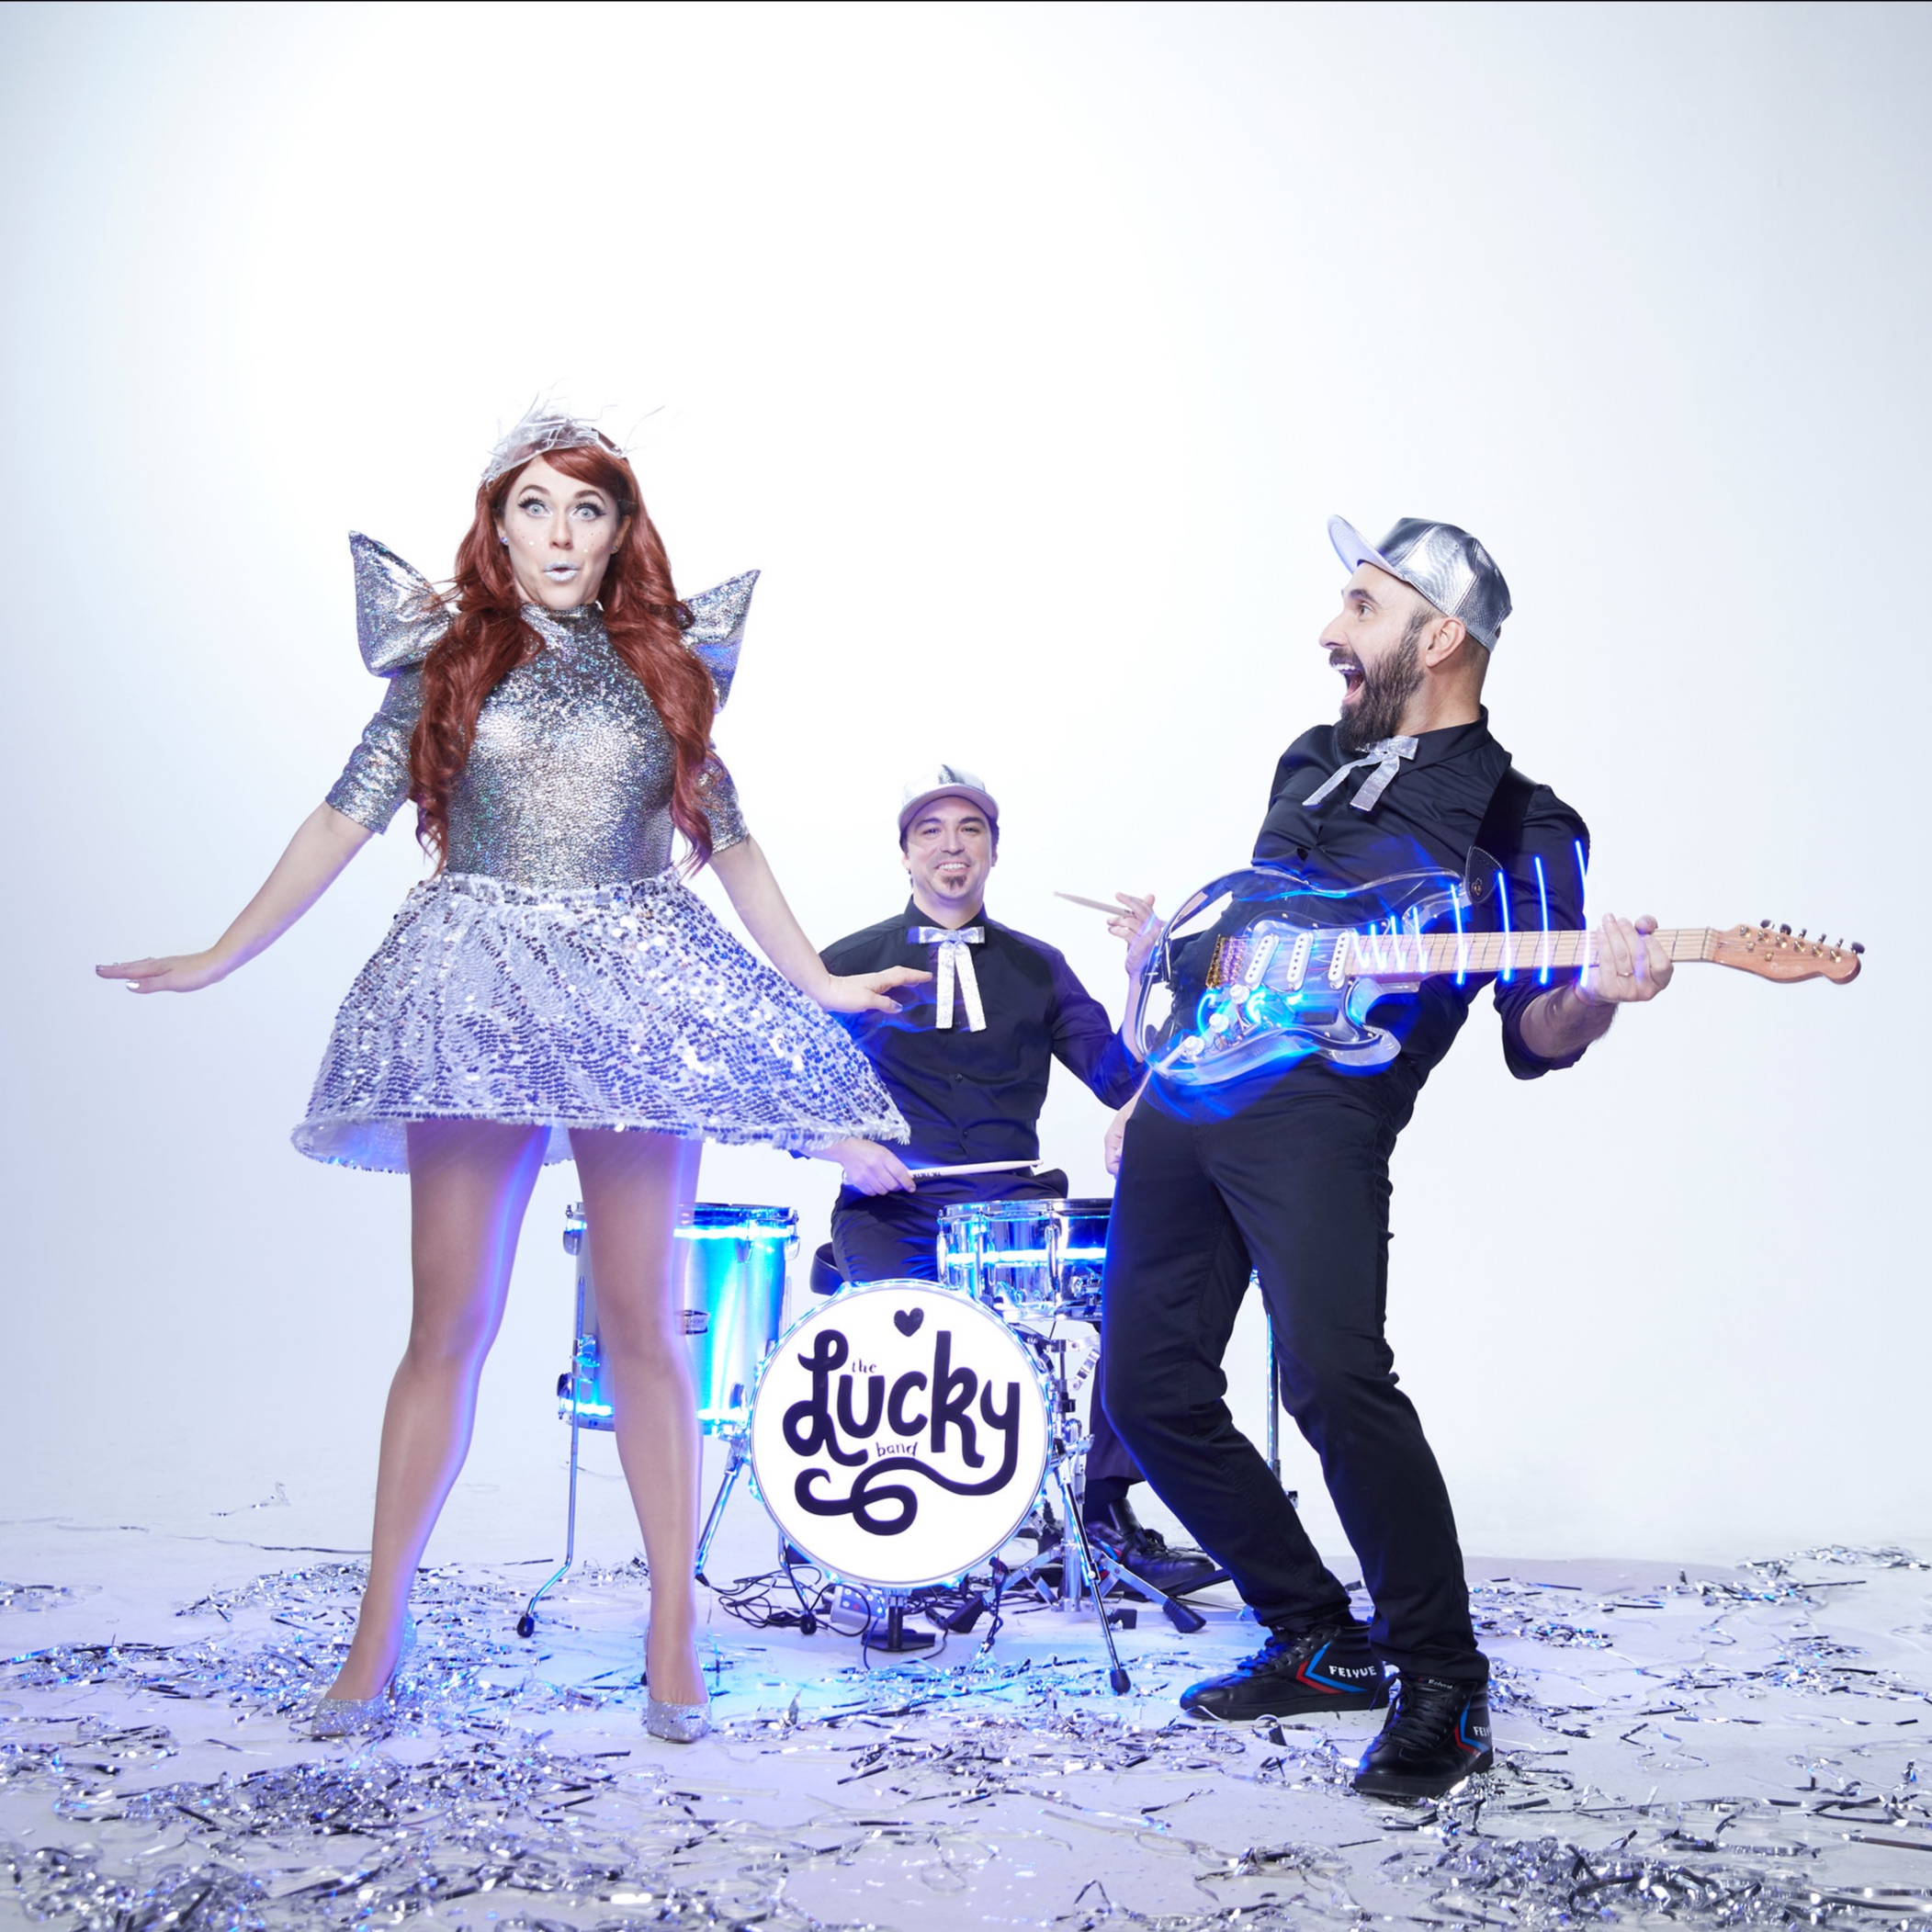 Image of The Lucky Band: A woman with red hair and a sparkling silver dress stands facing the audience with a surprised look; a man with a silver cap and black outfit leans back, holding a guitar and turns to look in amusement at her; a drummer wearing black smiles from the background